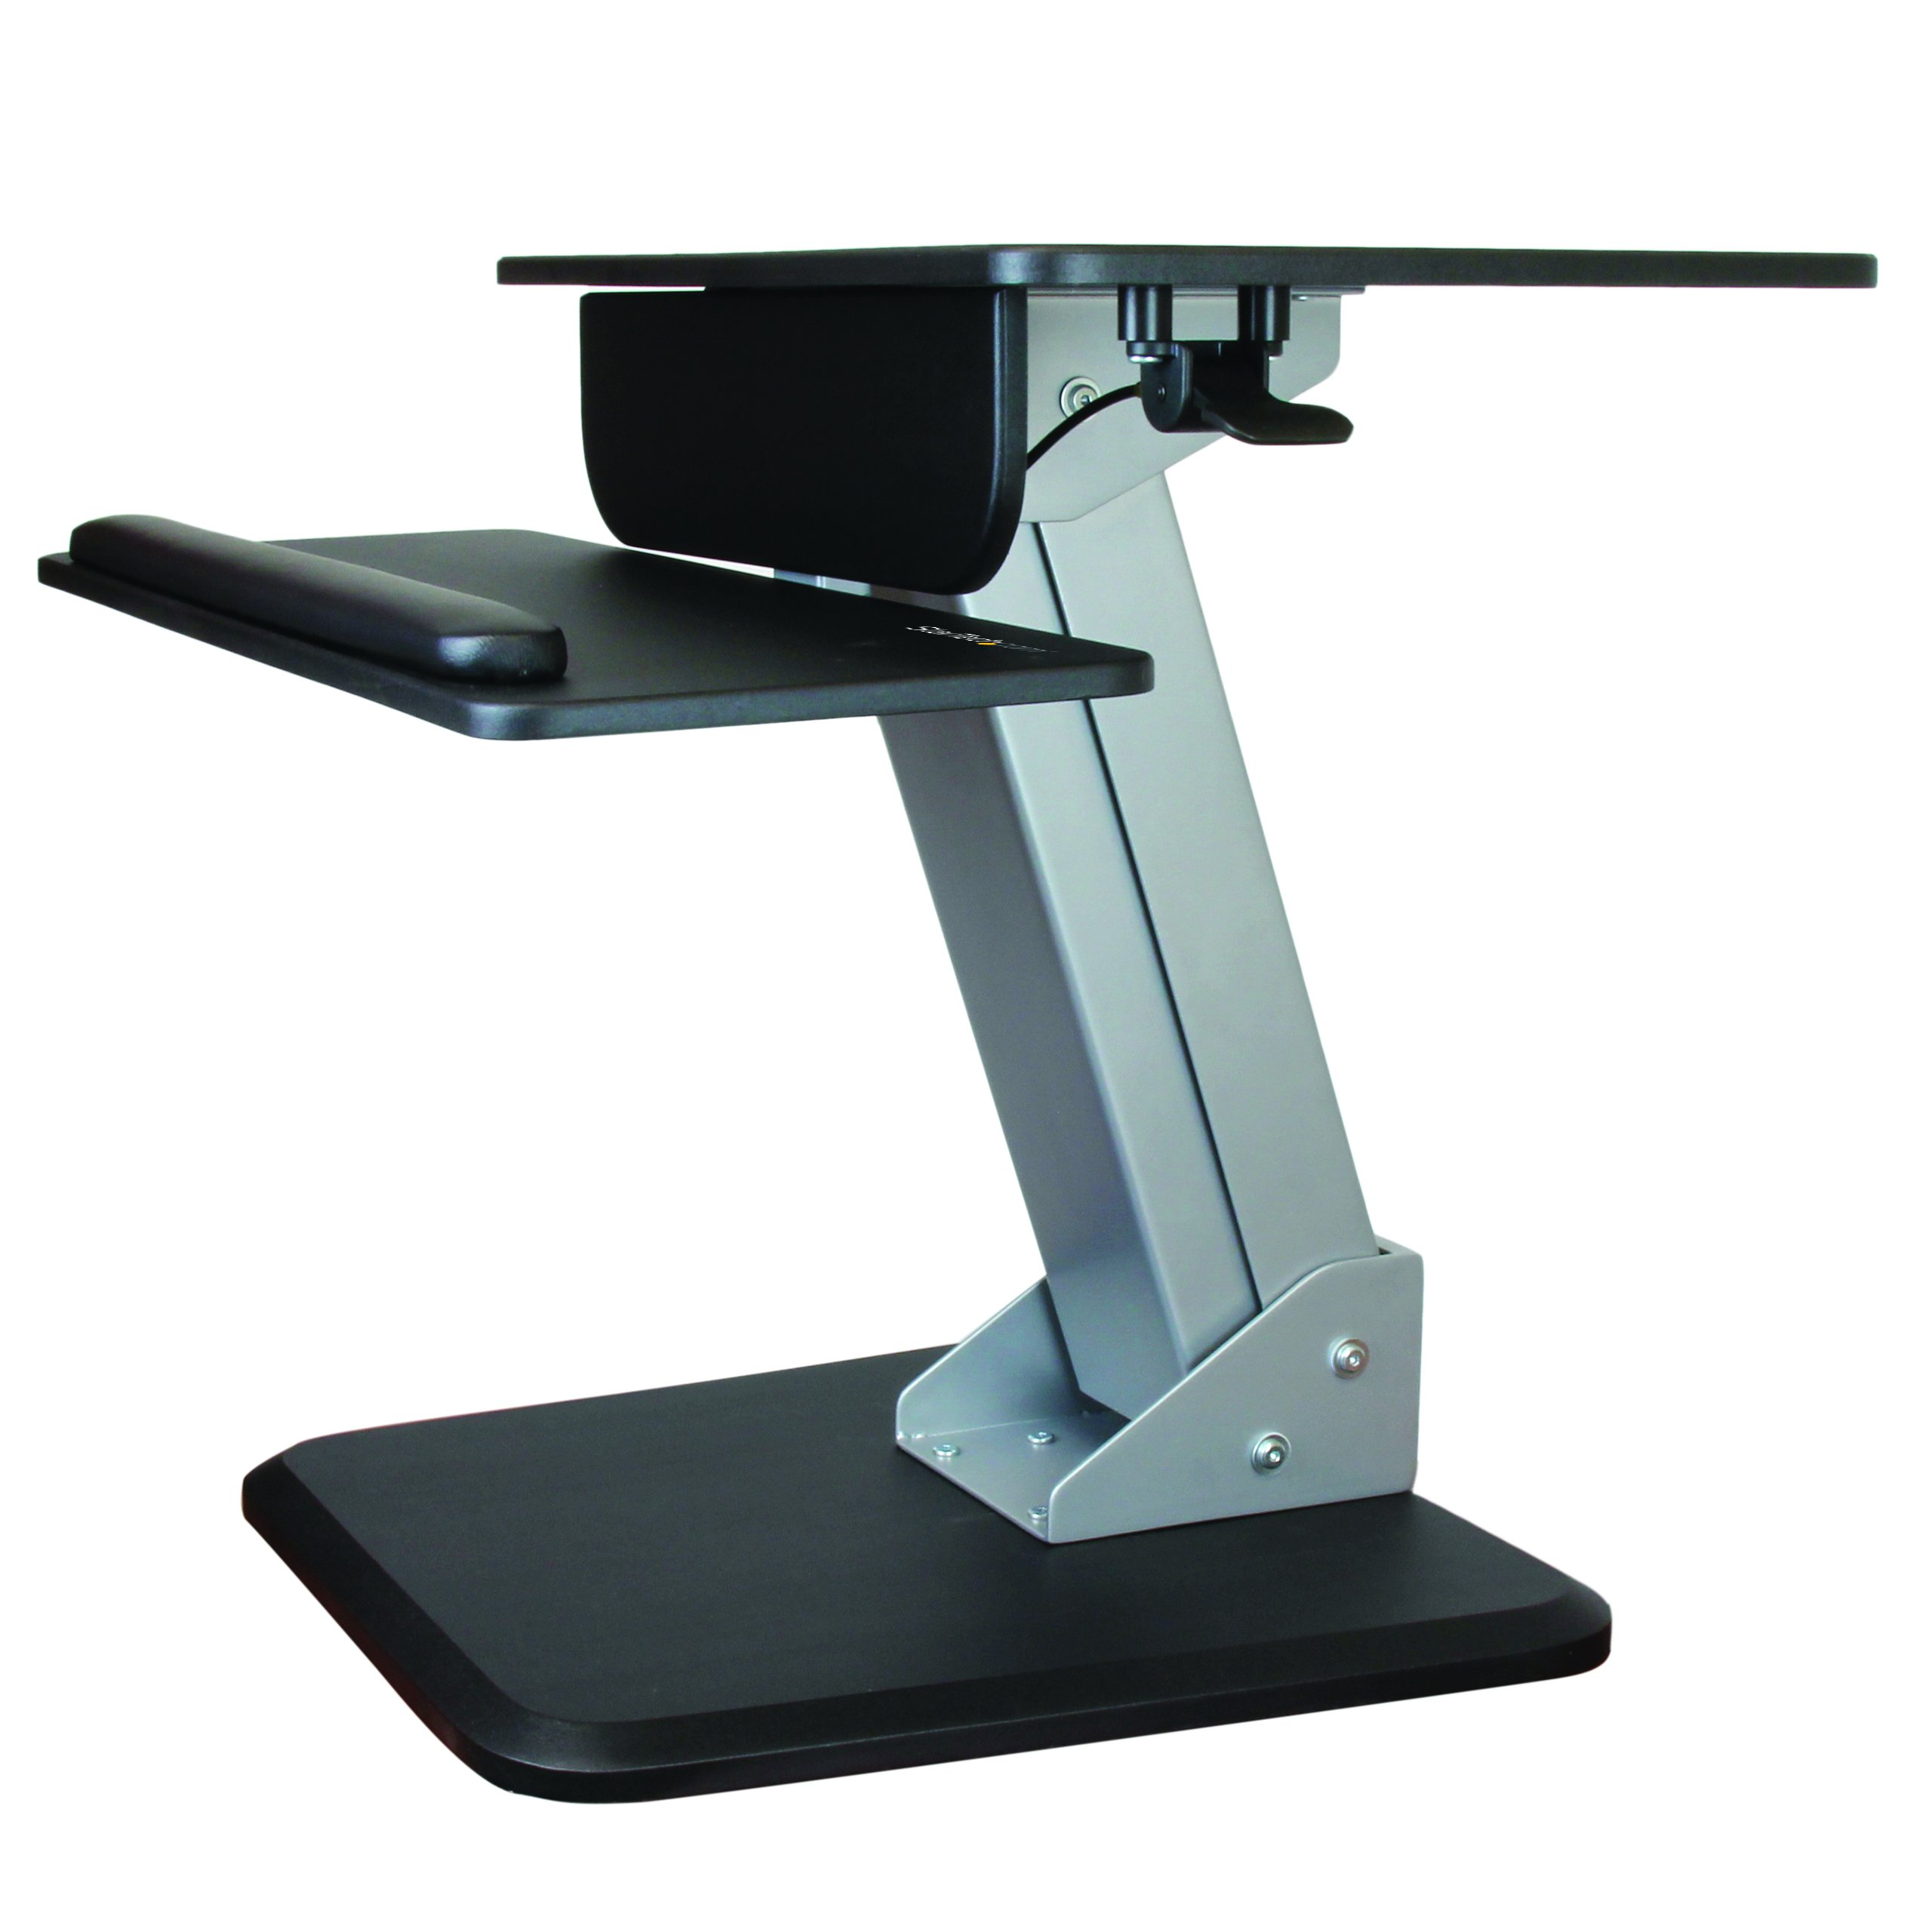 StarTech.com Height Adjustable Standing Desk Converter – Sit Stand Desk with One-finger Adjustment – Ergonomic Desk